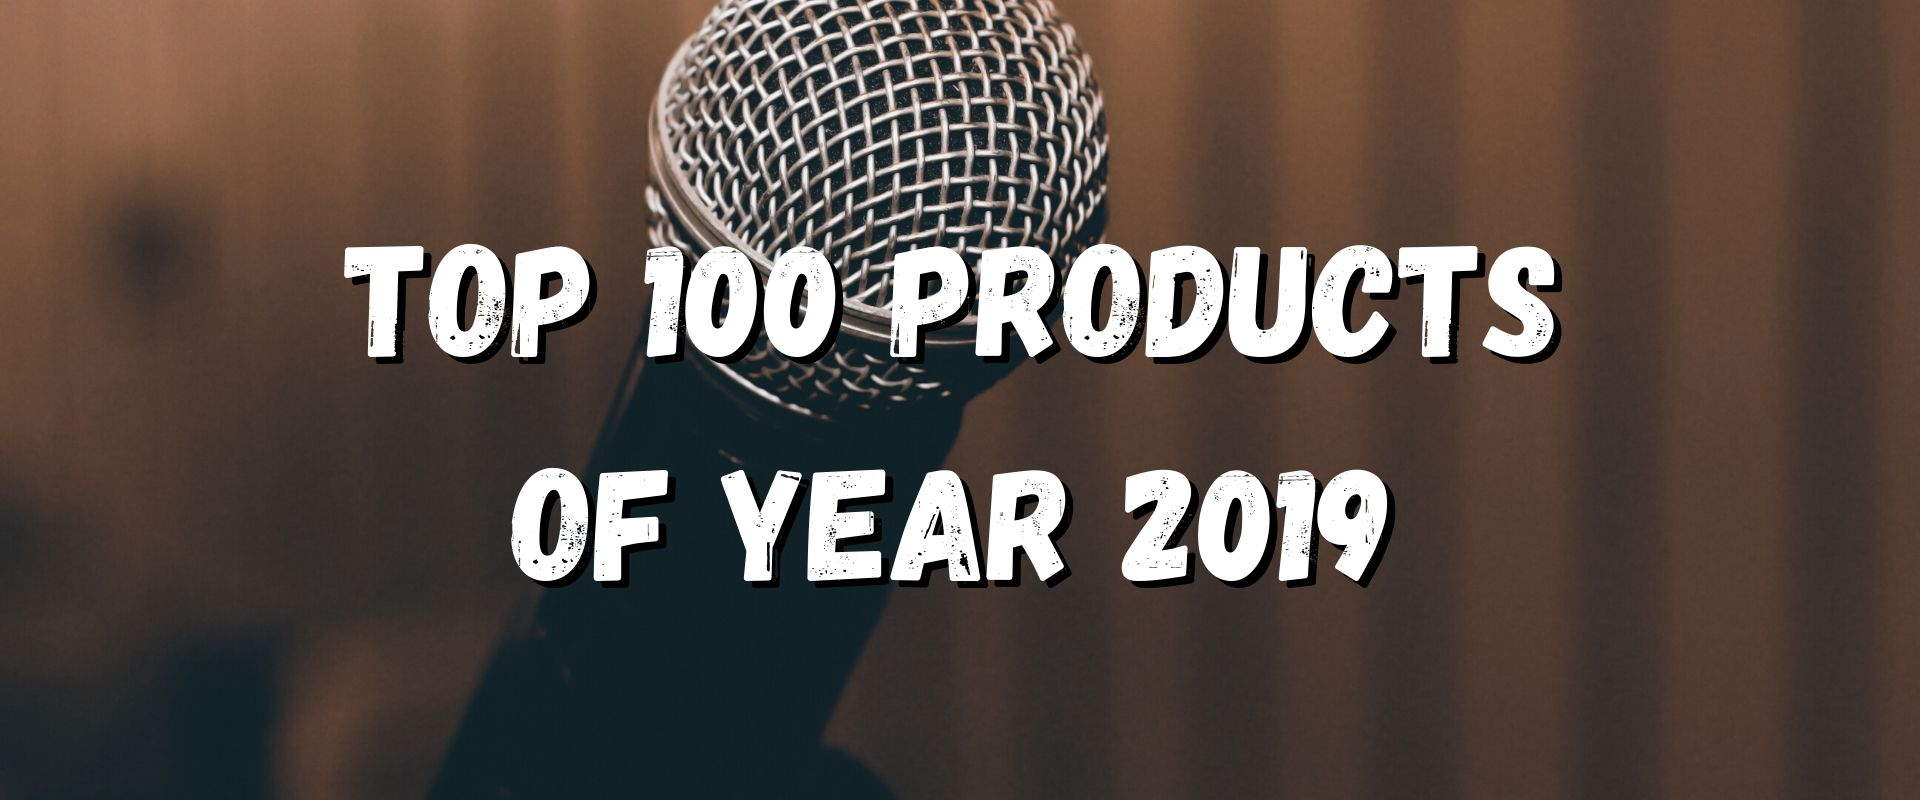 TOP 100 KARAOKE PRODUCTS OF YEAR 2019